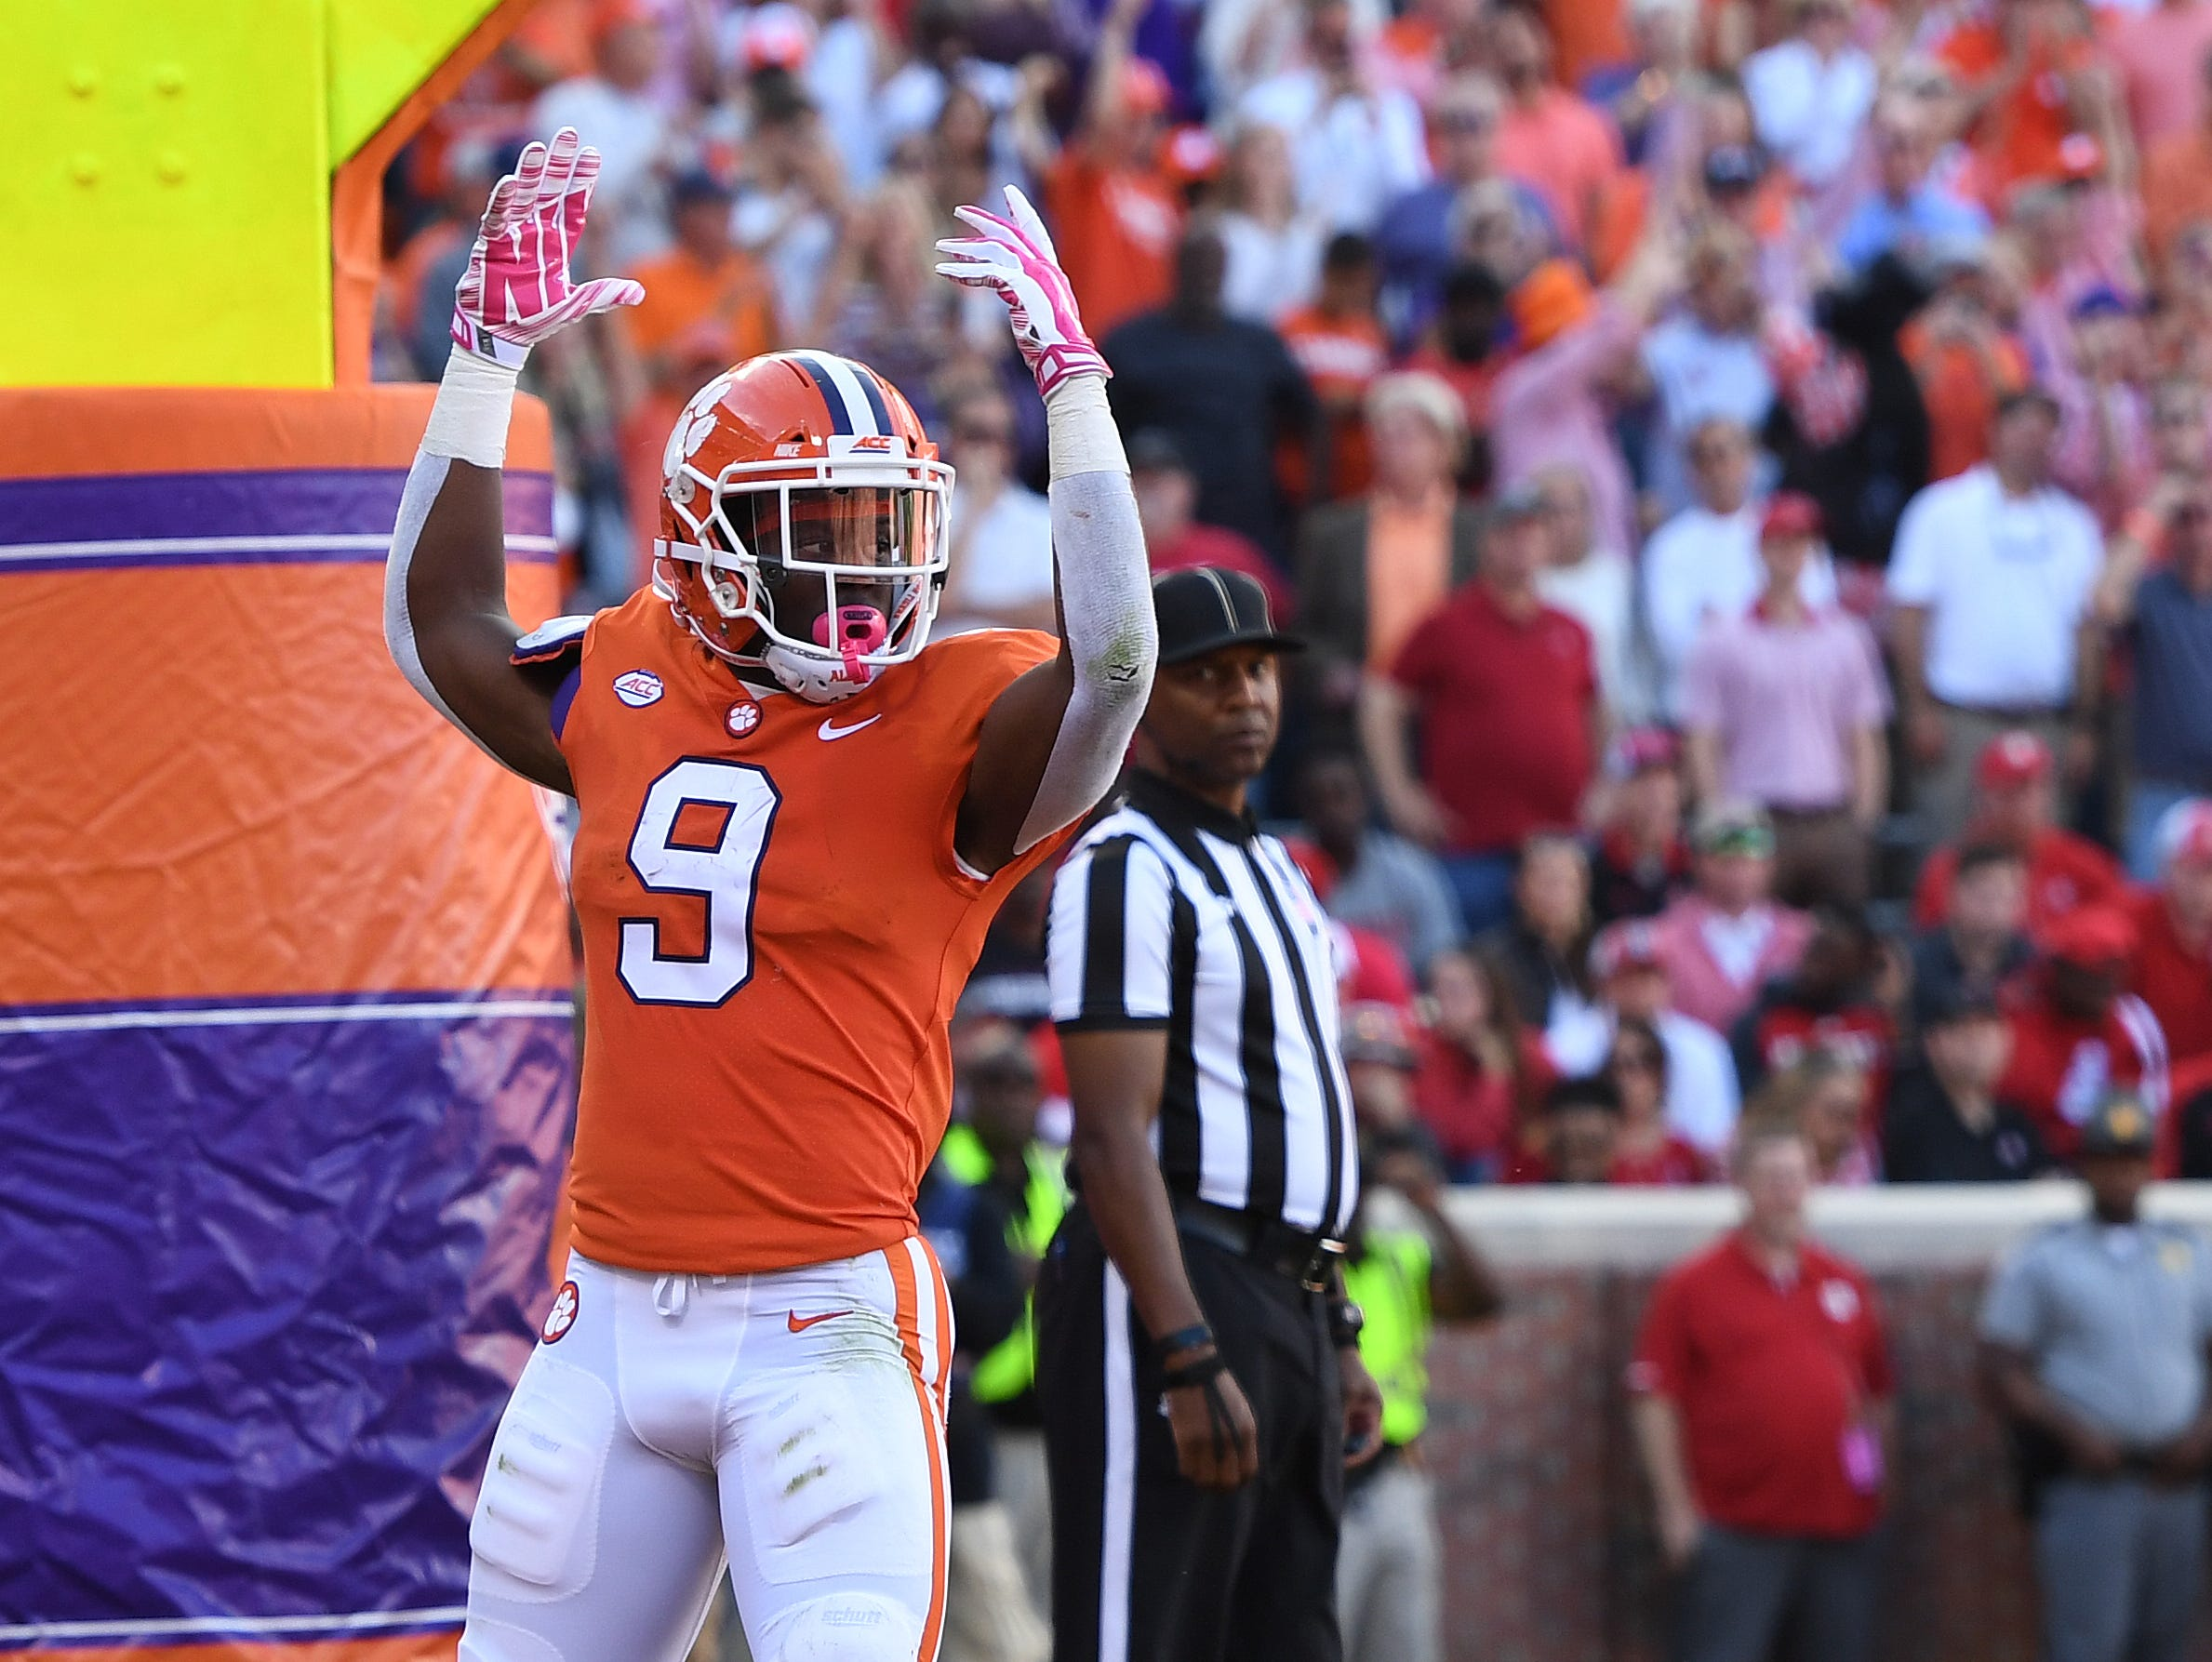 Clemson running back Travis Etienne (9) scores against NC State during the 2nd quarter Saturday, October 20, 2018 at Clemson's Memorial Stadium.